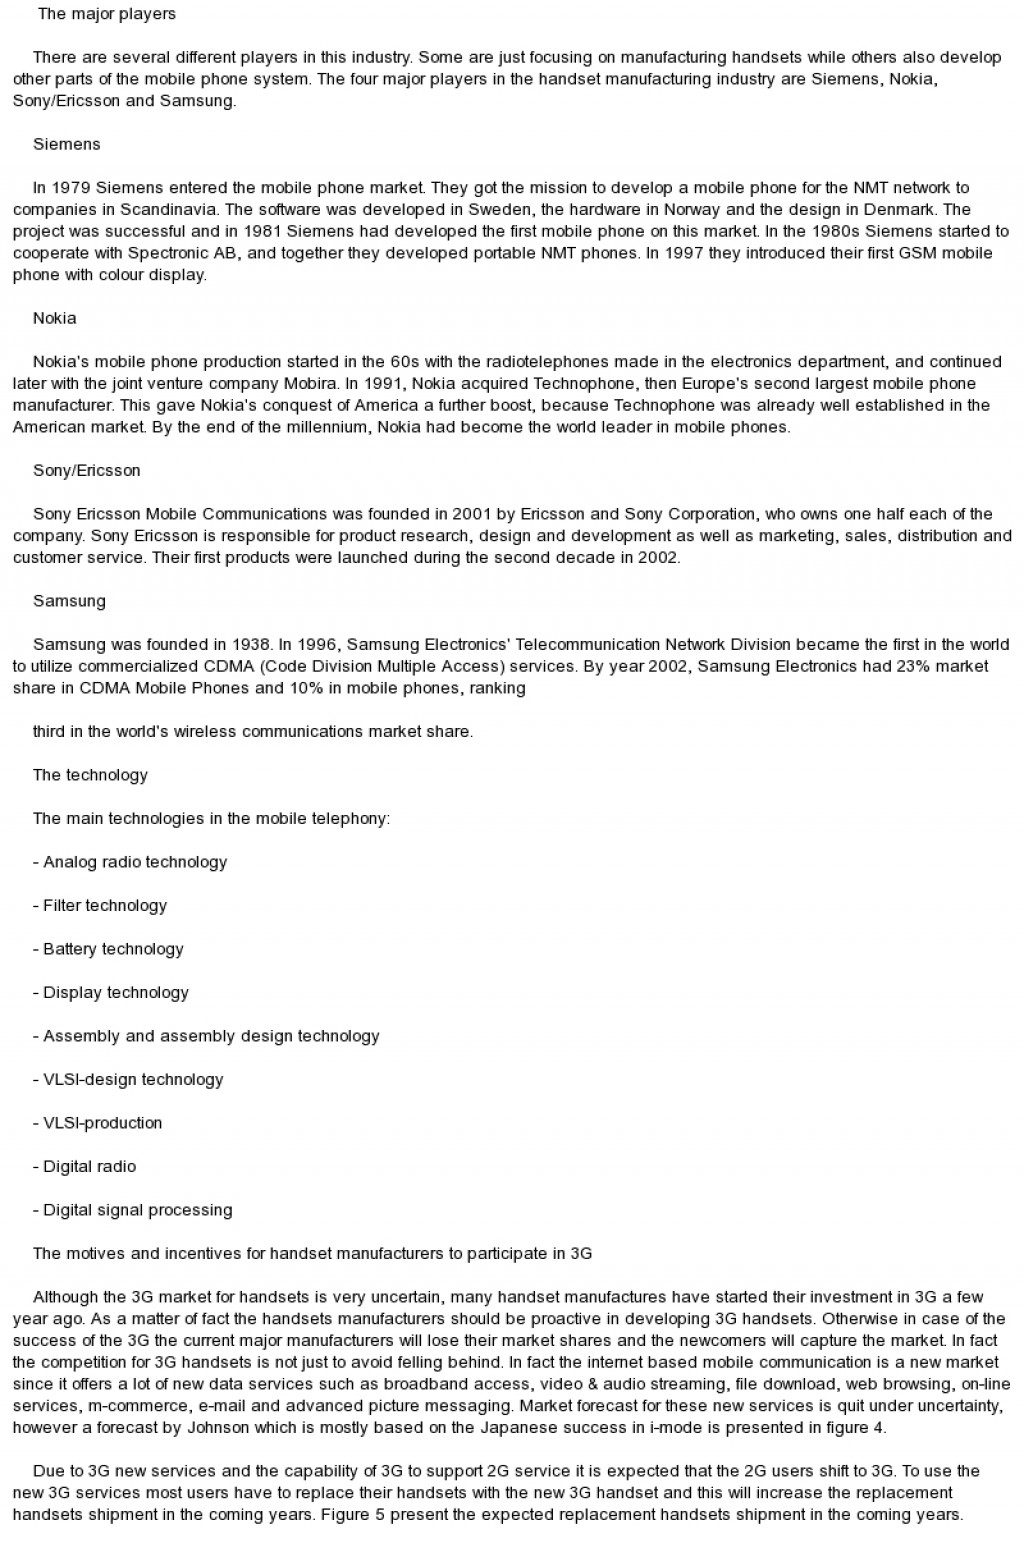 002 Essay Example Mobile Phones Should Banned In Schools Cell School About Using Phone At Cellphones Allowed Argumentative Template Not Pdf Examples Unique Be Large